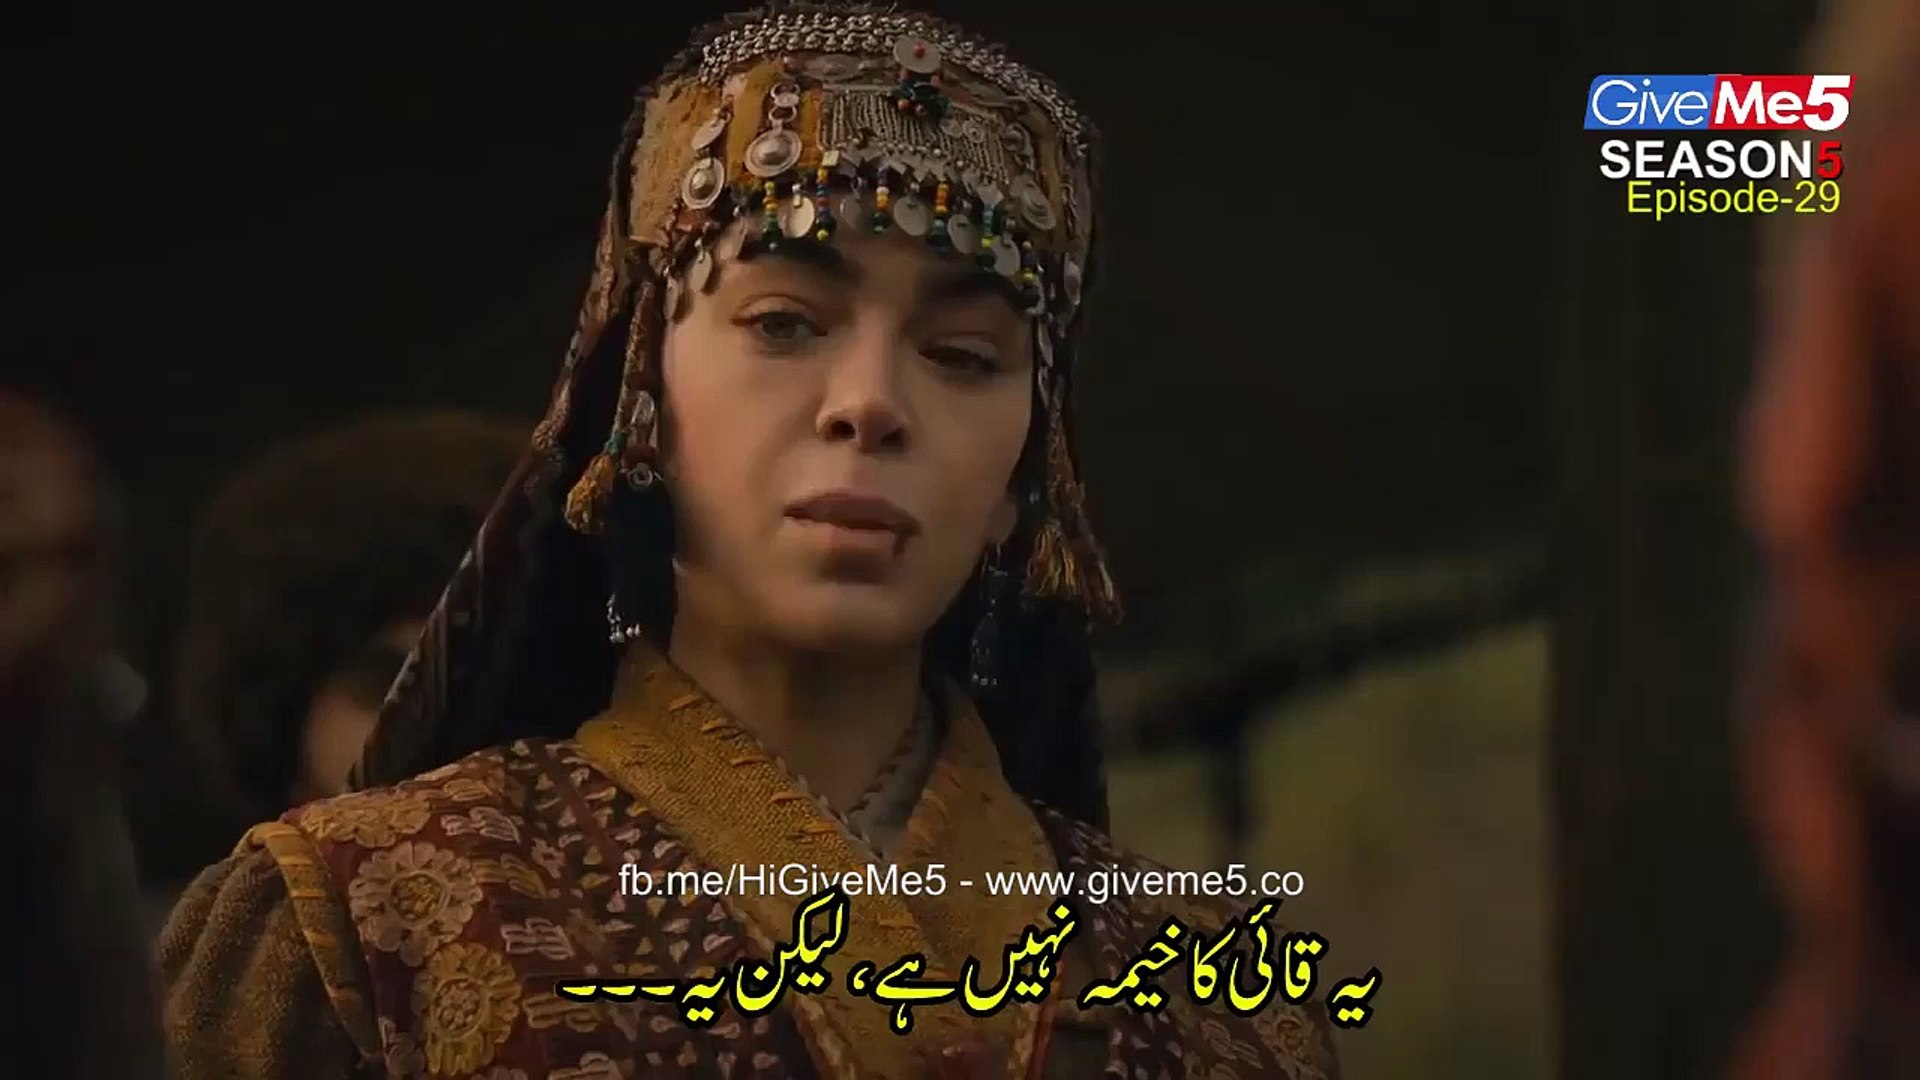 Dirilis Ertugrul Ghazi Season 5 in Urdu Subtitle Episode 29 & 30